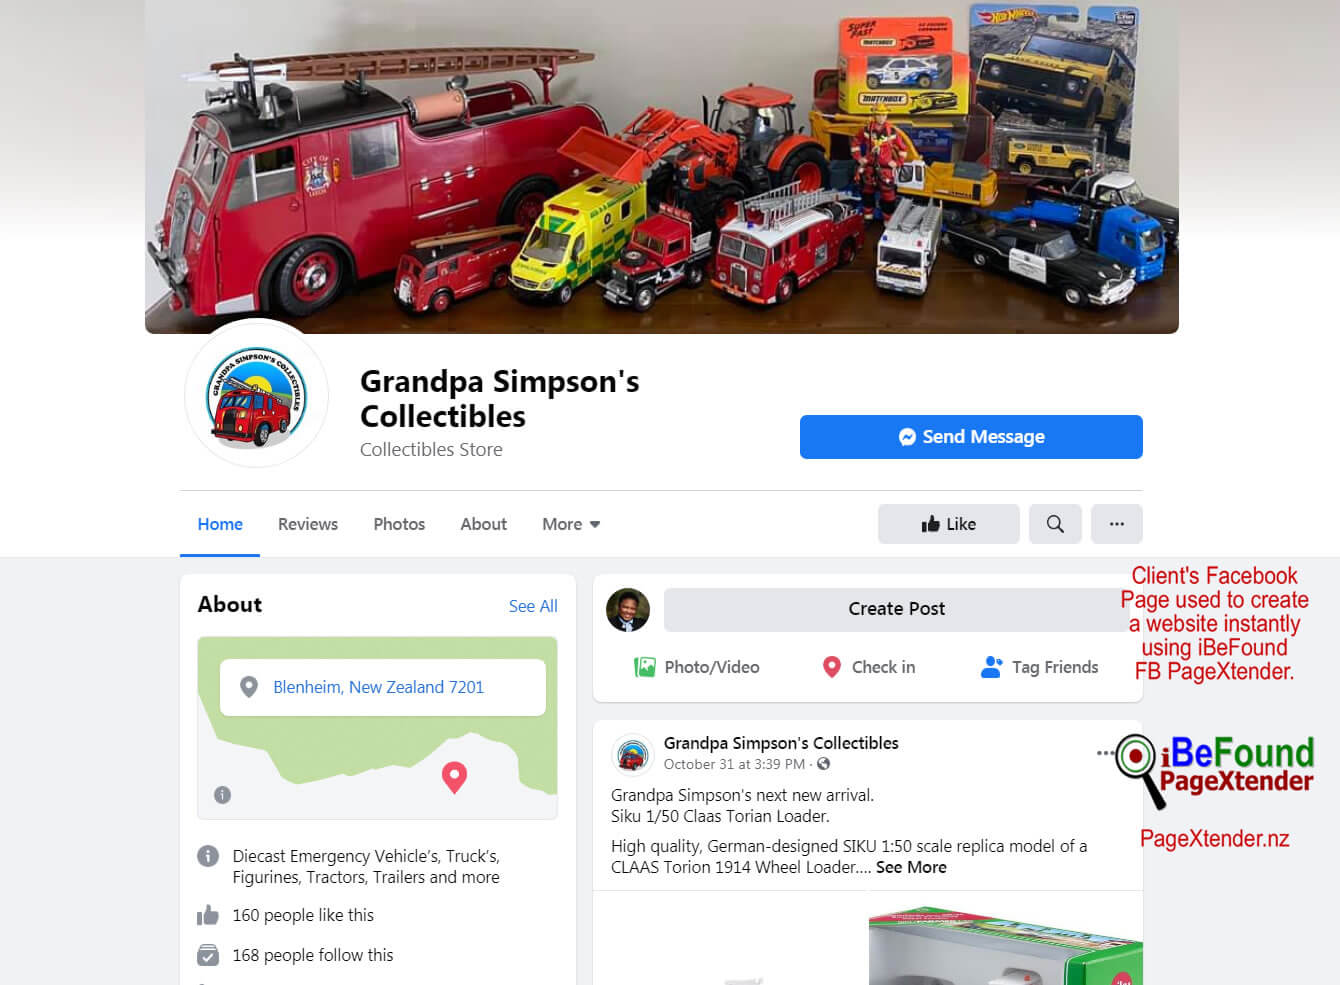 FB Page Of Grandpa Simpsons Collectibles Used For Instant Biz Site Creation With PageXtender By IBeFound NZ